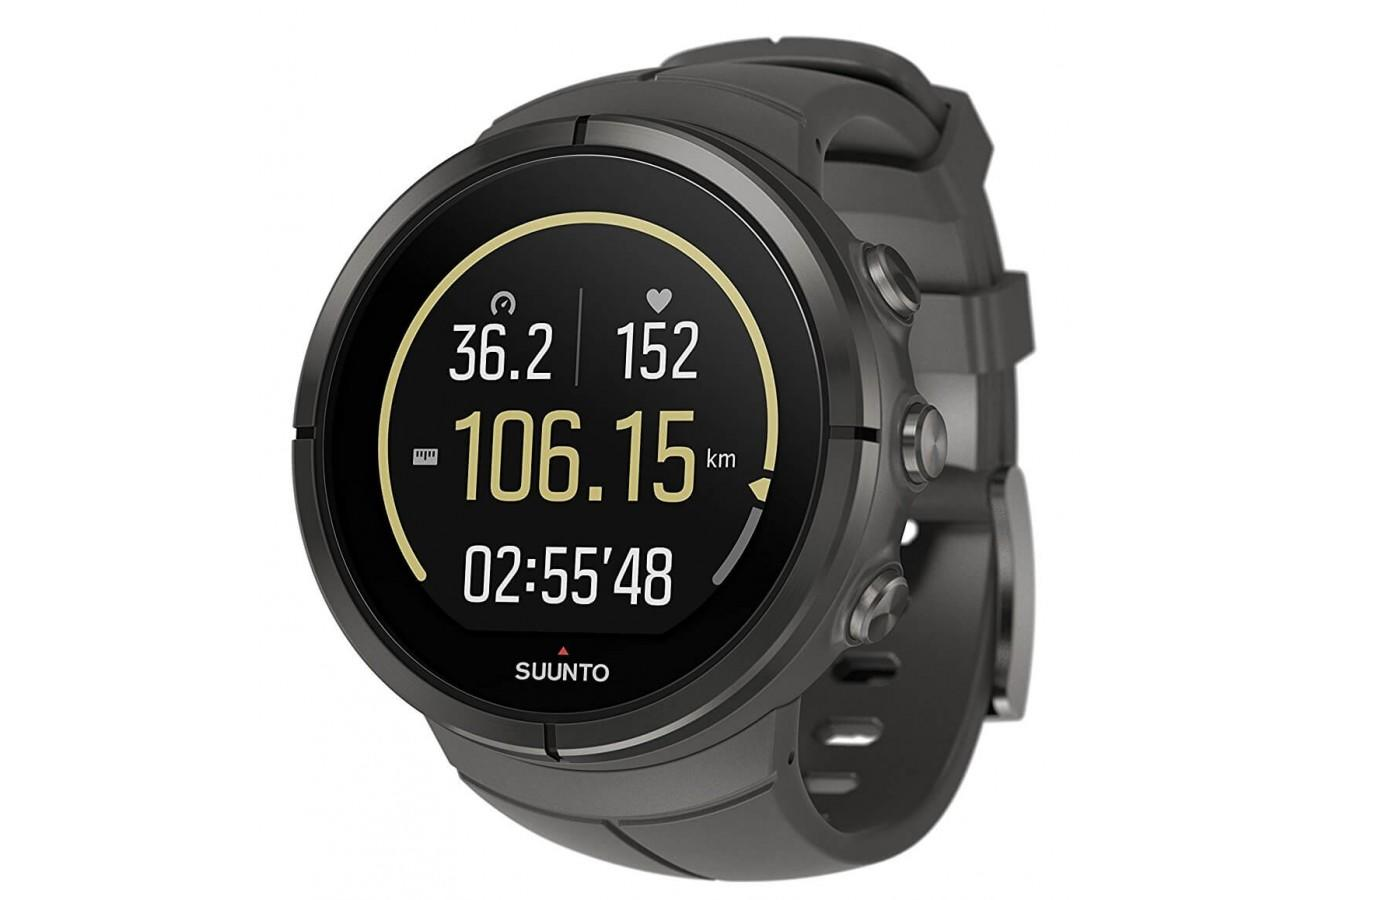 The Suunto Spartan Ultra features a full-color touch screen